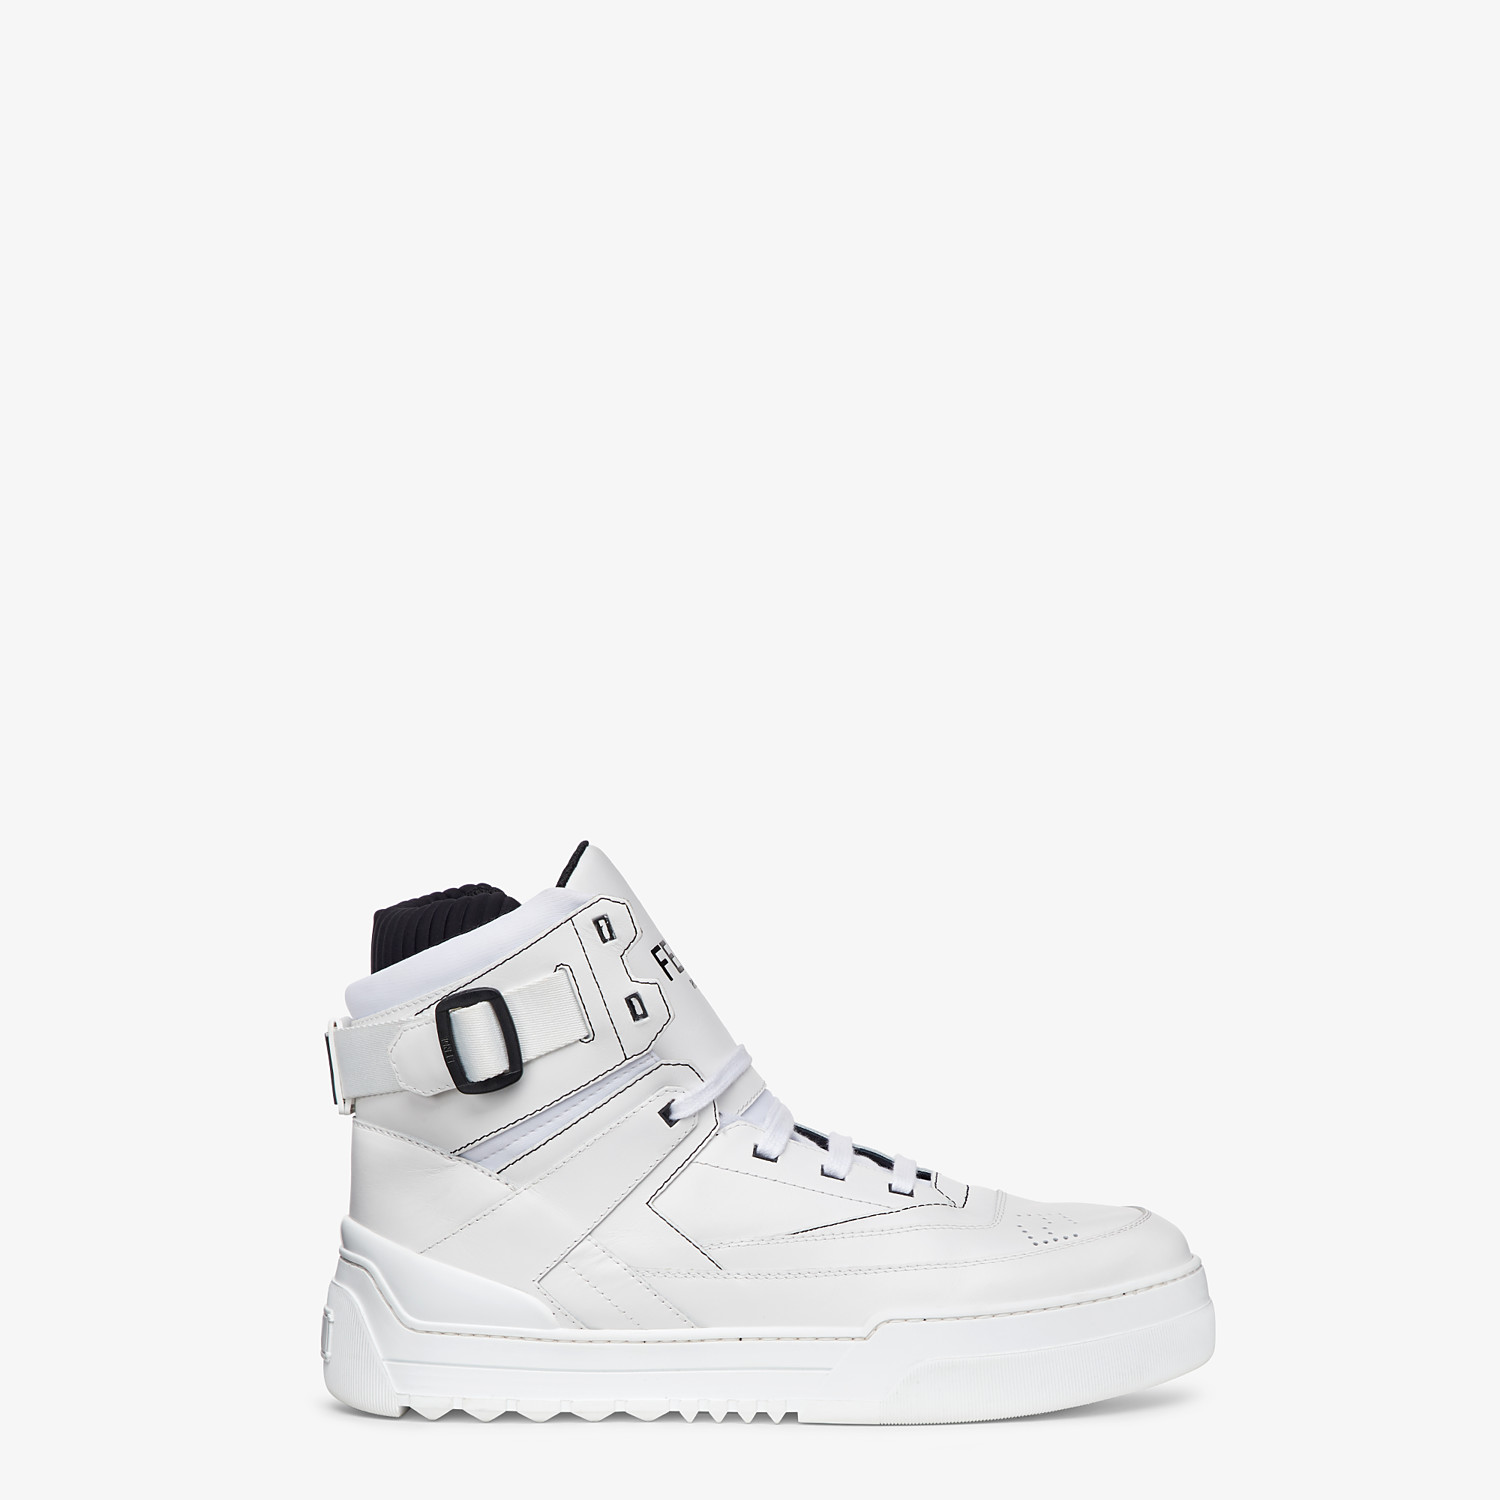 FENDI SNEAKERS - White leather high-tops - view 1 detail